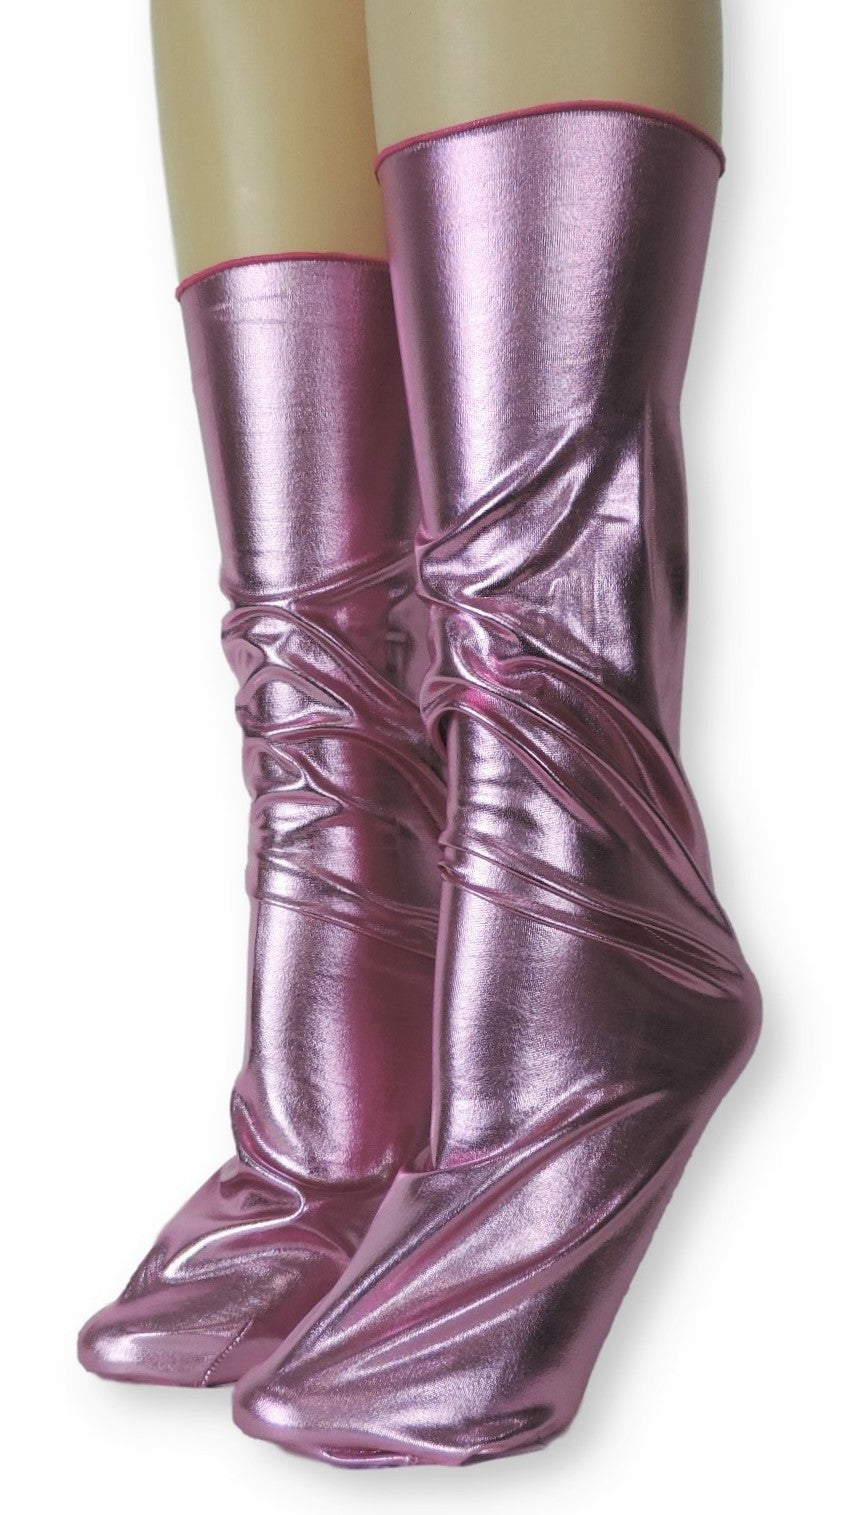 Warrior Pink Pearl Reflective Socks - Global Trendz Fashion®